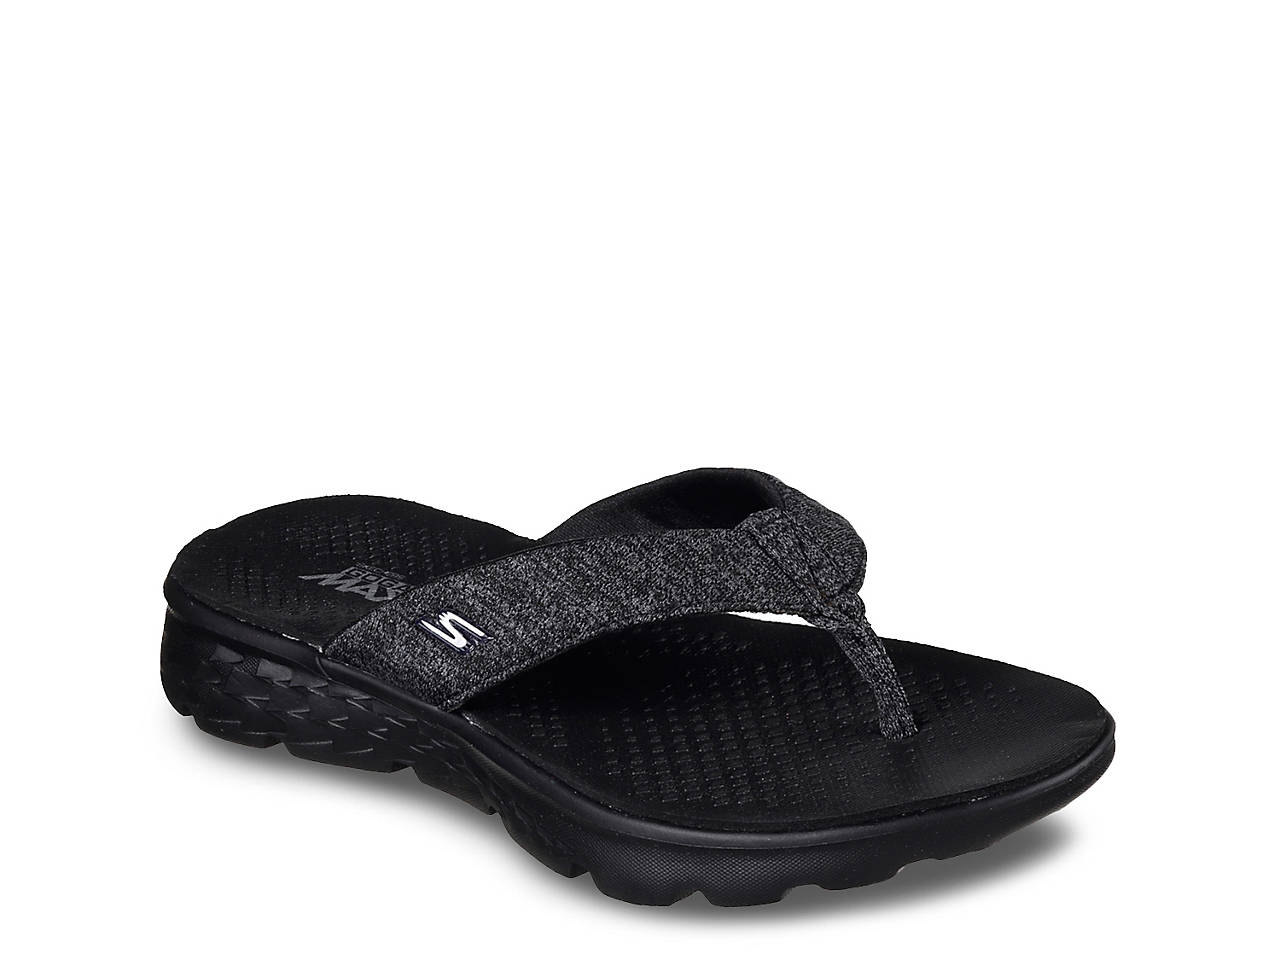 4be5c0e61 Skechers On The Go Vivacity Flip Flop Women s Shoes